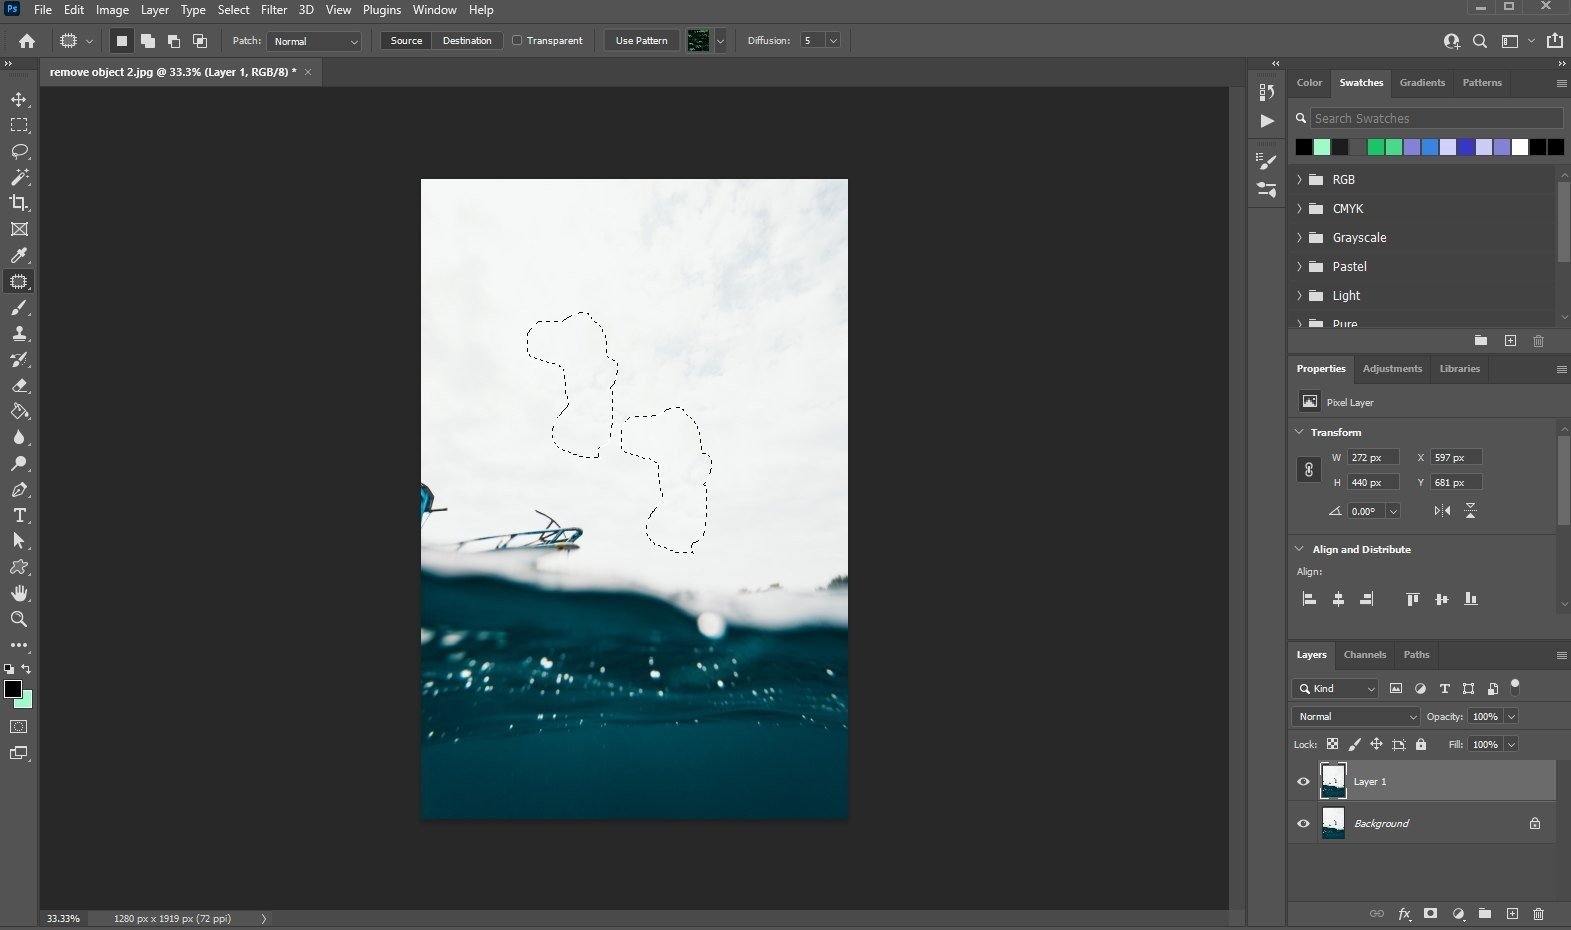 remove an object in photoshop - using patch tool - 2